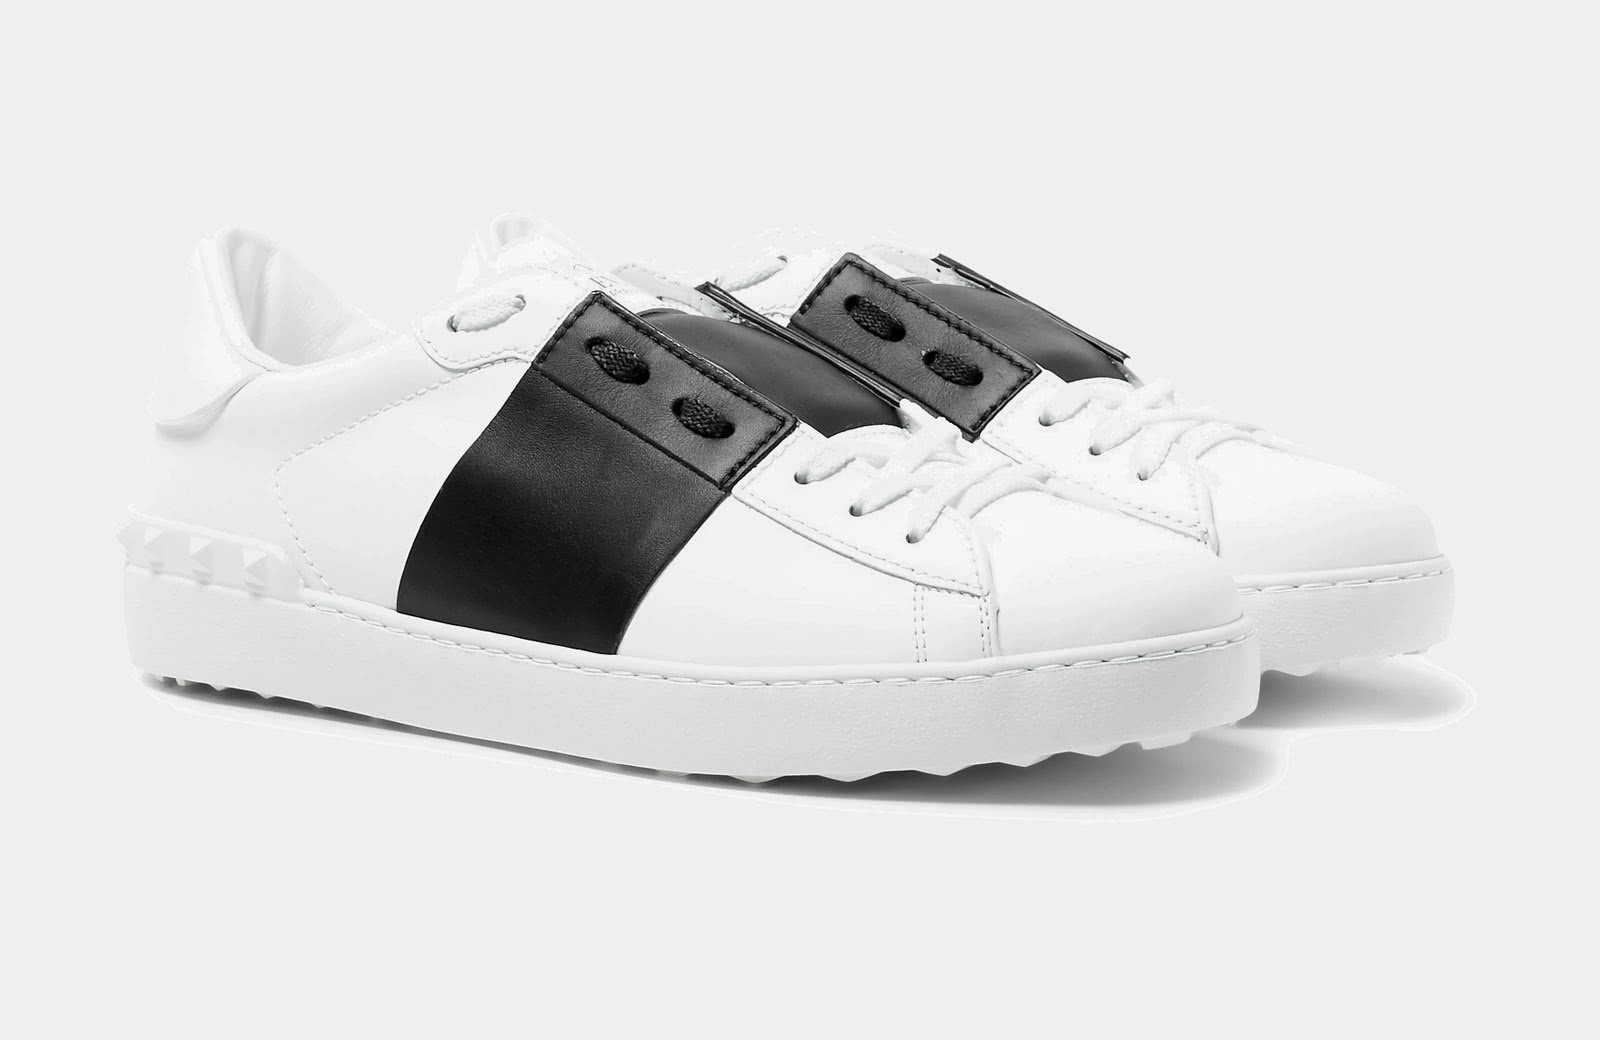 best black and white sneaker men Valentino Garavani luxury style - Luxe Digital